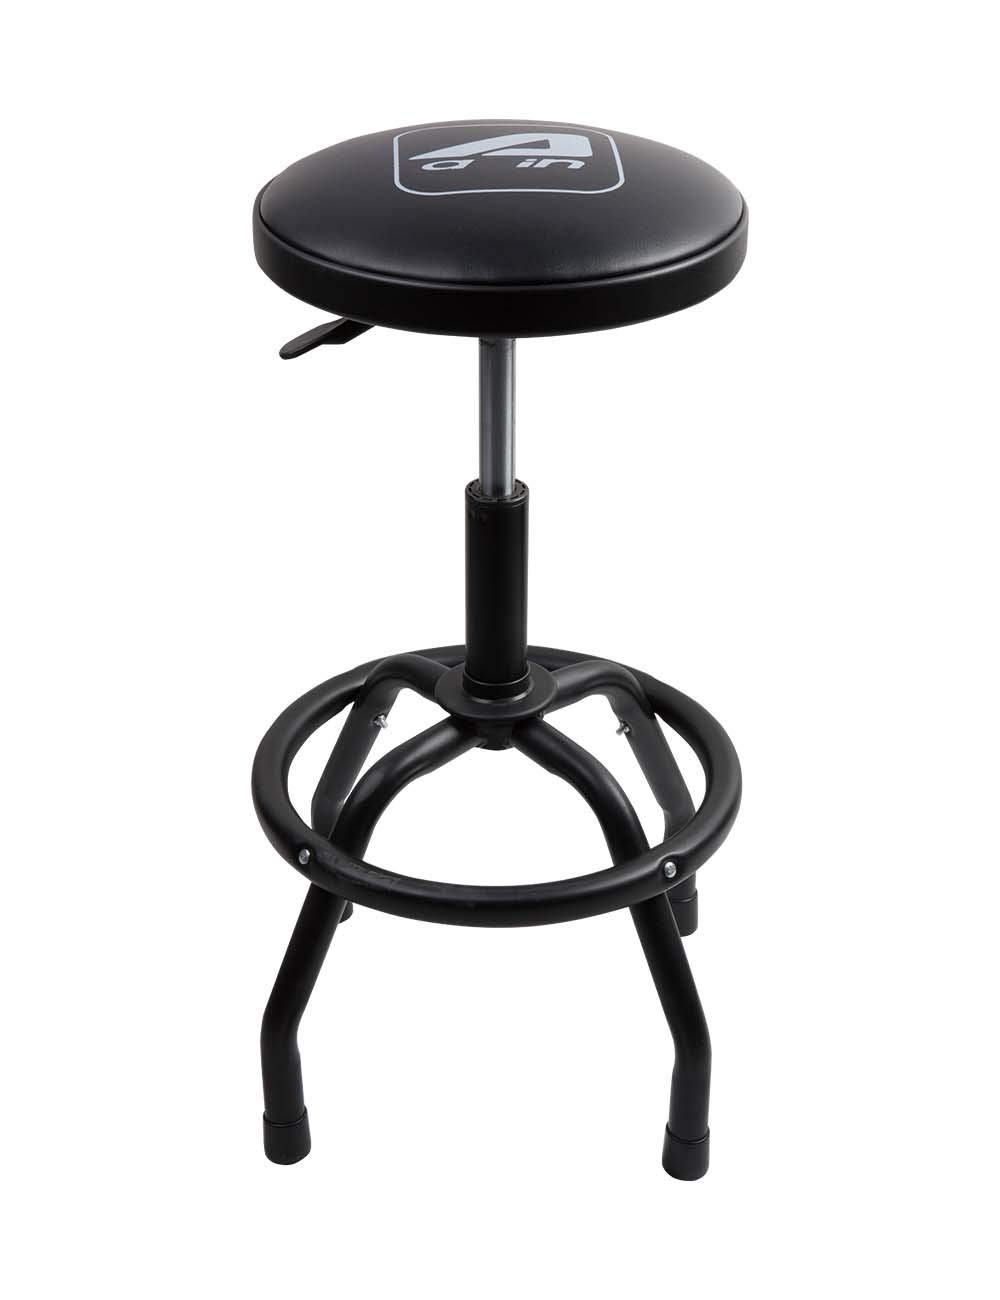 Aain LT013 Garage Bar Stool,Heavy Duty Adjustable Pneumatic Shop Stool with Black Powder Coating Finish Steel Legs for Garger,Workshop and Auto Repair Shop(Black) by Aain